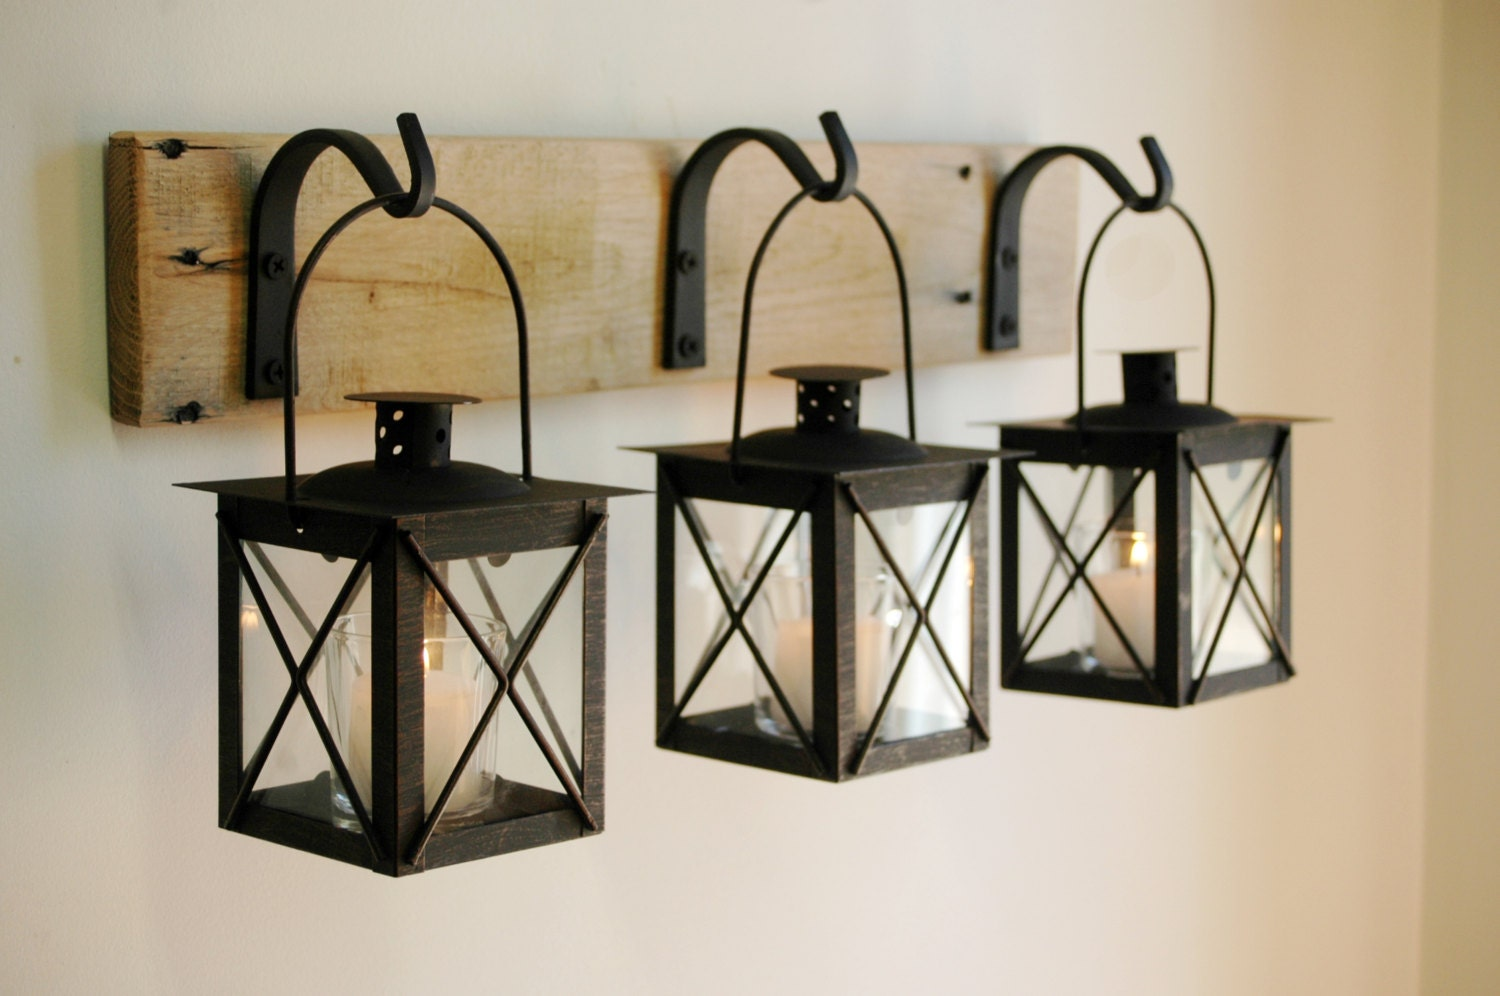 Black lantern trio wall decor home decor rustic decor for Wall accessories